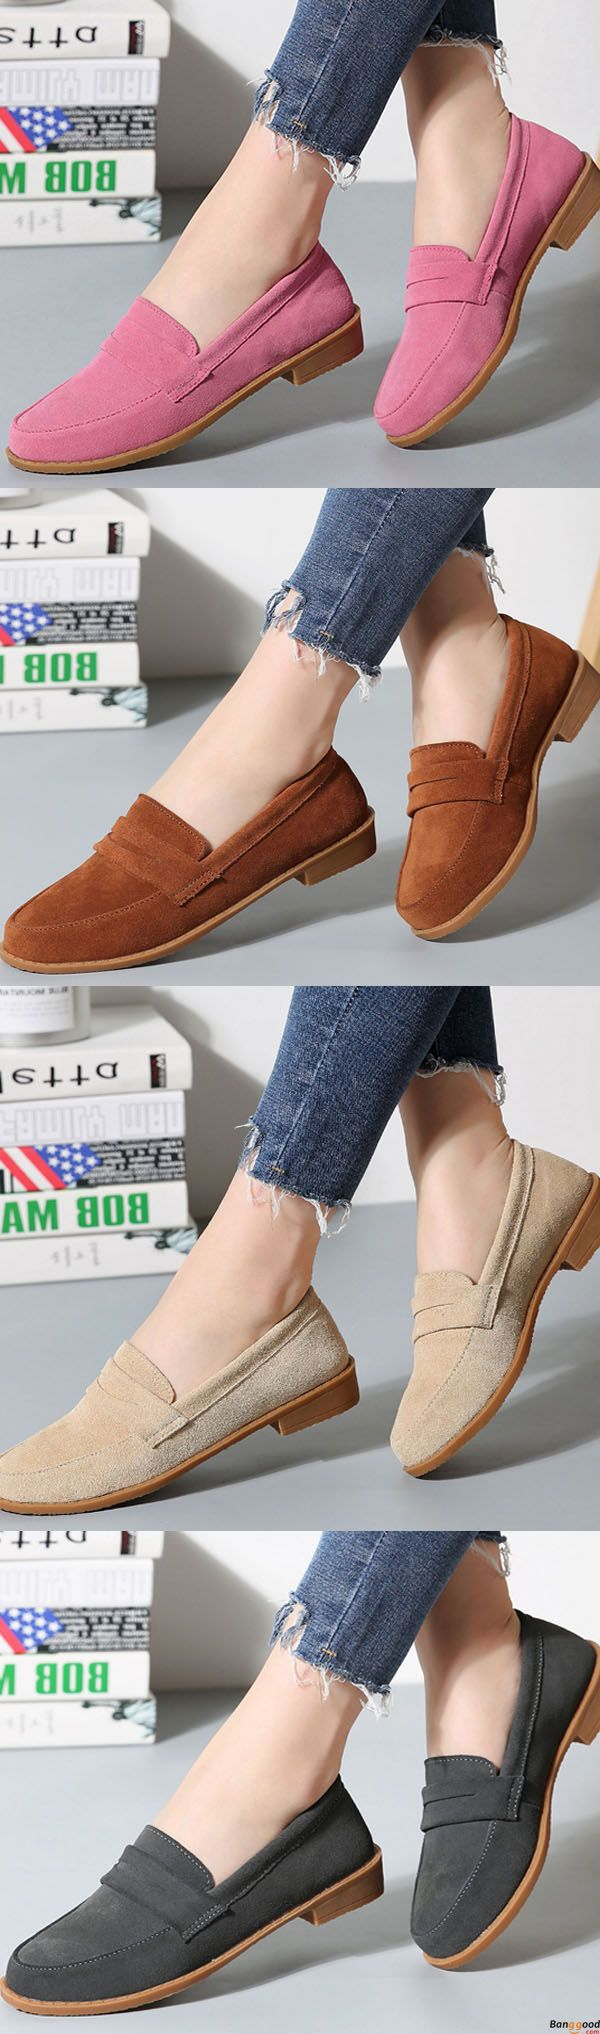 US$29.99 + Free shipping. Comfy Soft Sole Suede Leather Flat Loafers. Comfy and casual. You may need one for daily wear. Shop at banggood now.